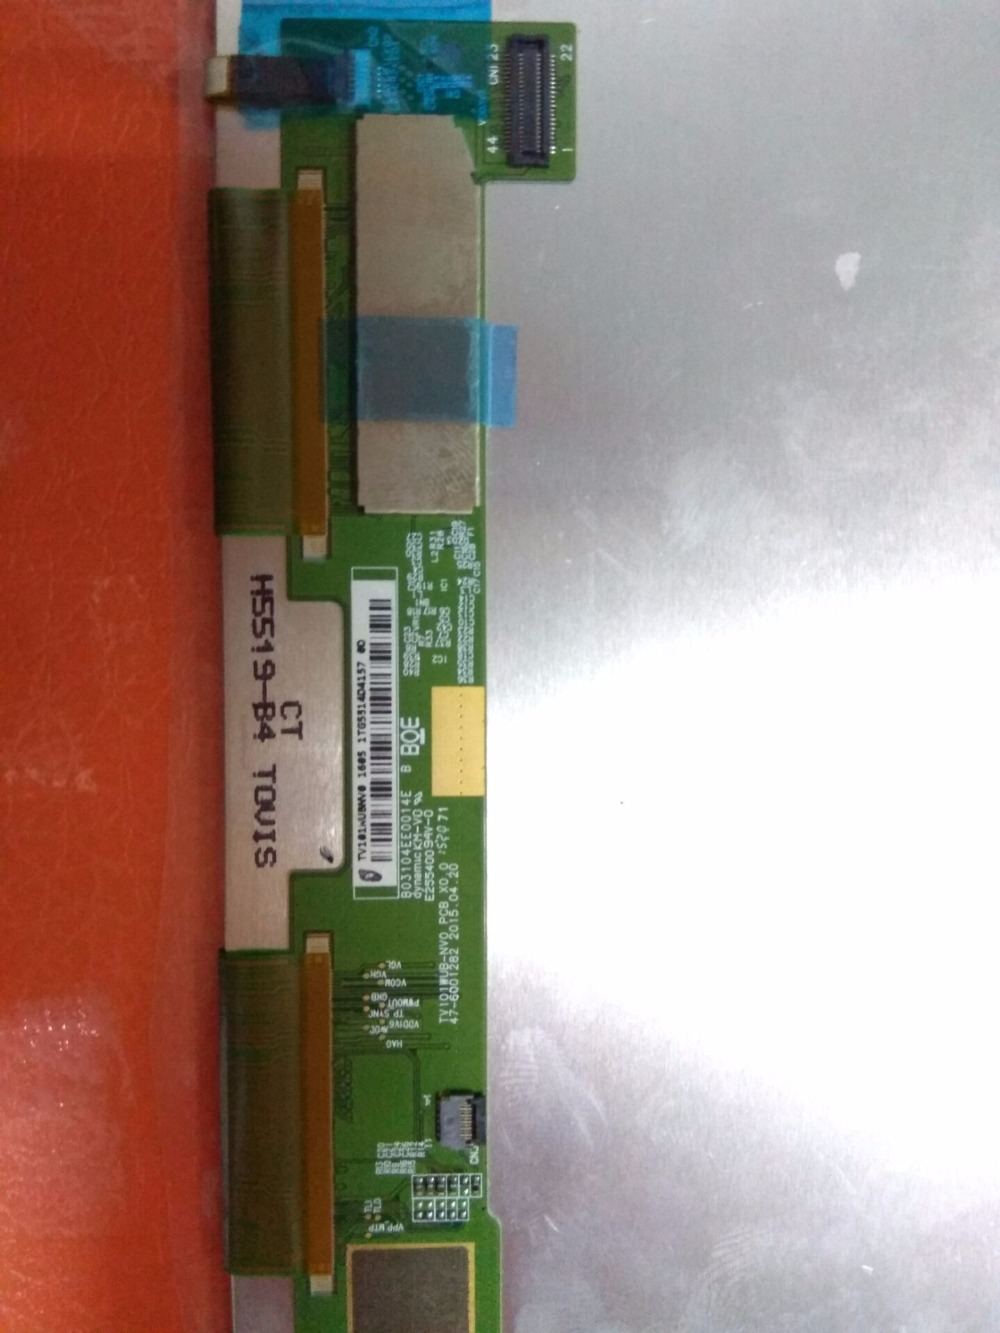 625 A+ LCD Display Matrix TV101WUB-NV0 PCB X0.0 LCD Screen Panel Replacement ideal lux настольная лампа ideal lux dorothy tl1 big trasparente page 4